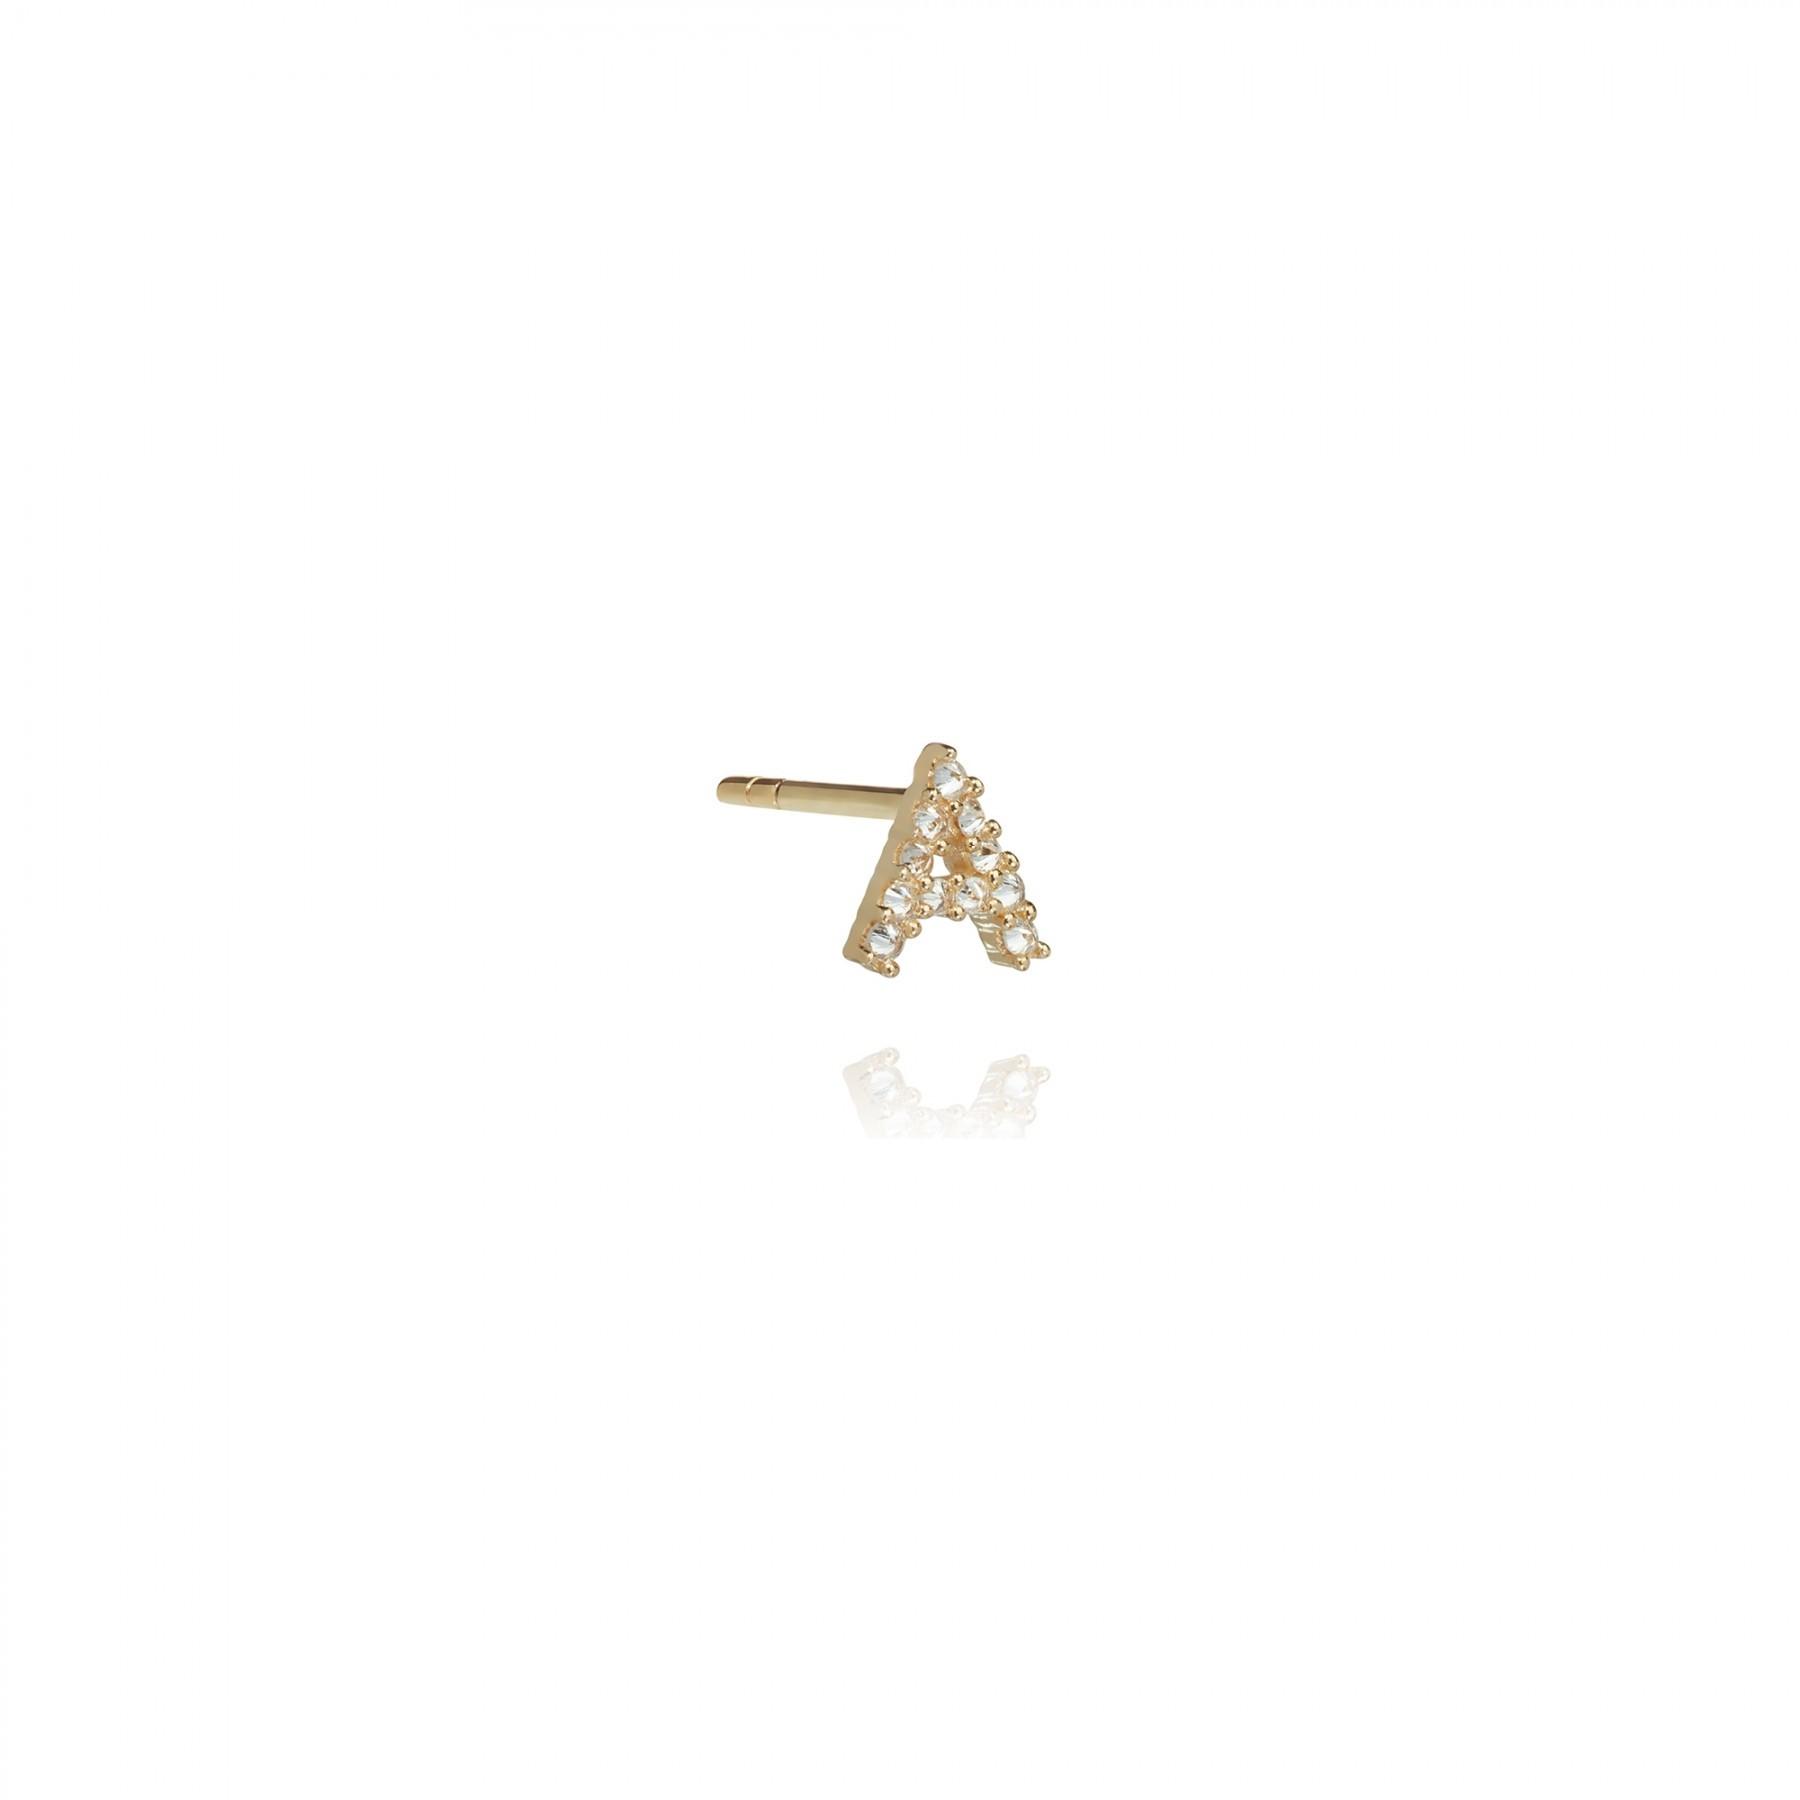 ANNOUSHKA Gold A Diamond Initial Single Stud Earring